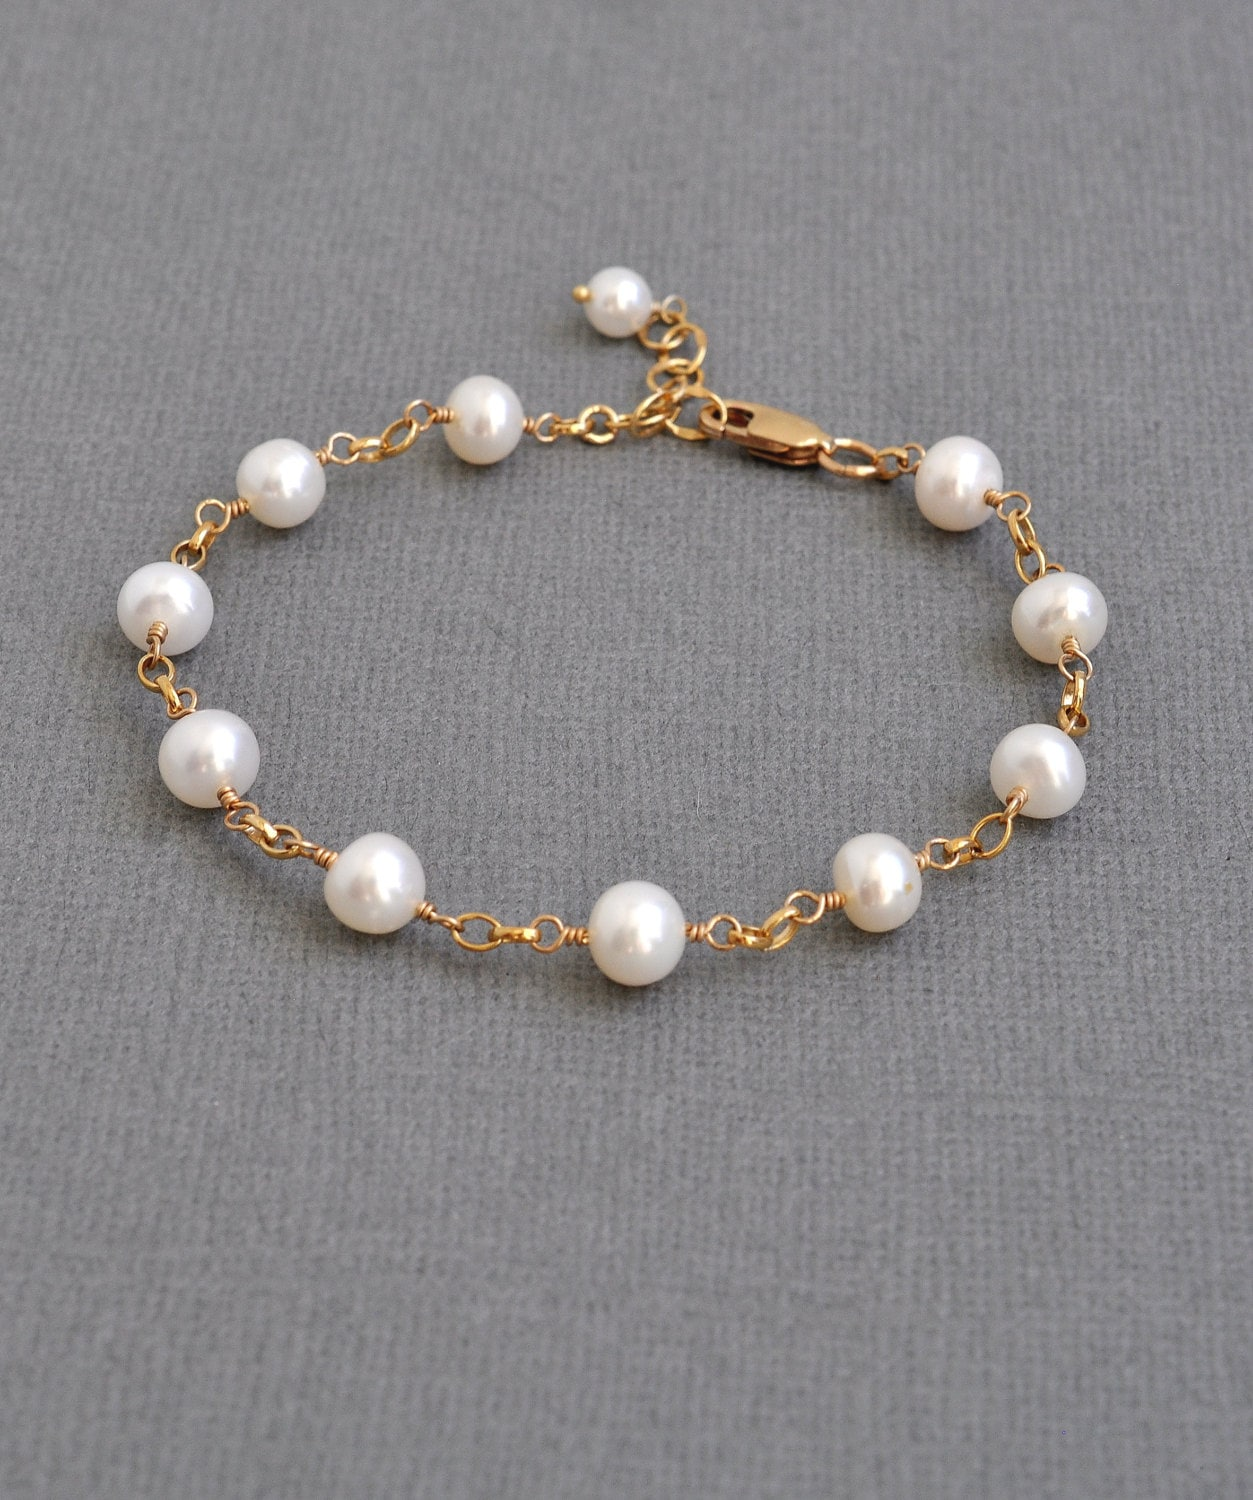 bangles pearl buy silver and engraved bracelet delicate bracelets jewellery sterling personalised mens